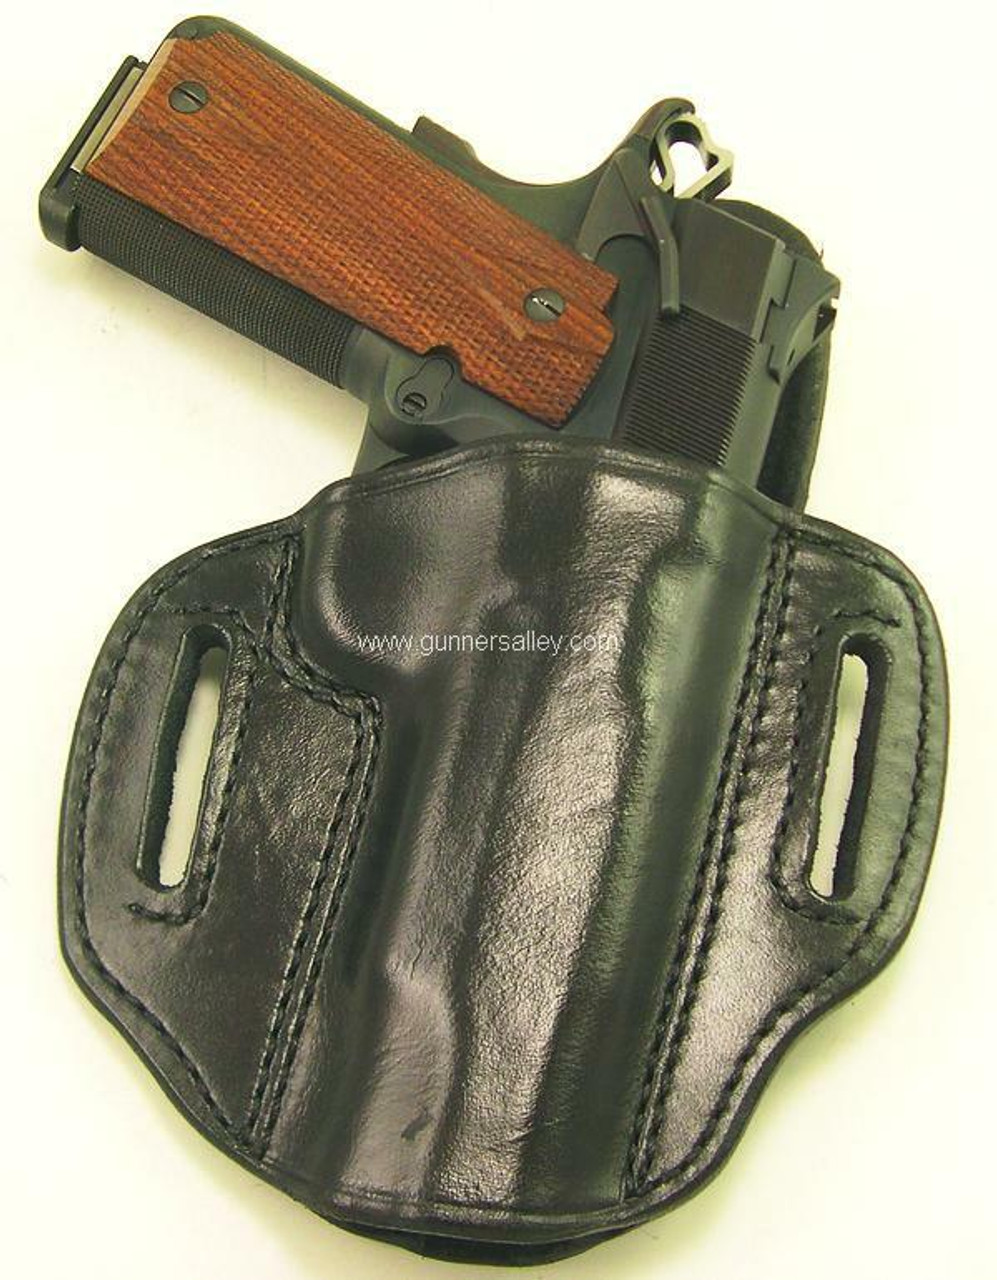 Shown with a 1911 Commander (4.25 inch barrel) - Right Hand